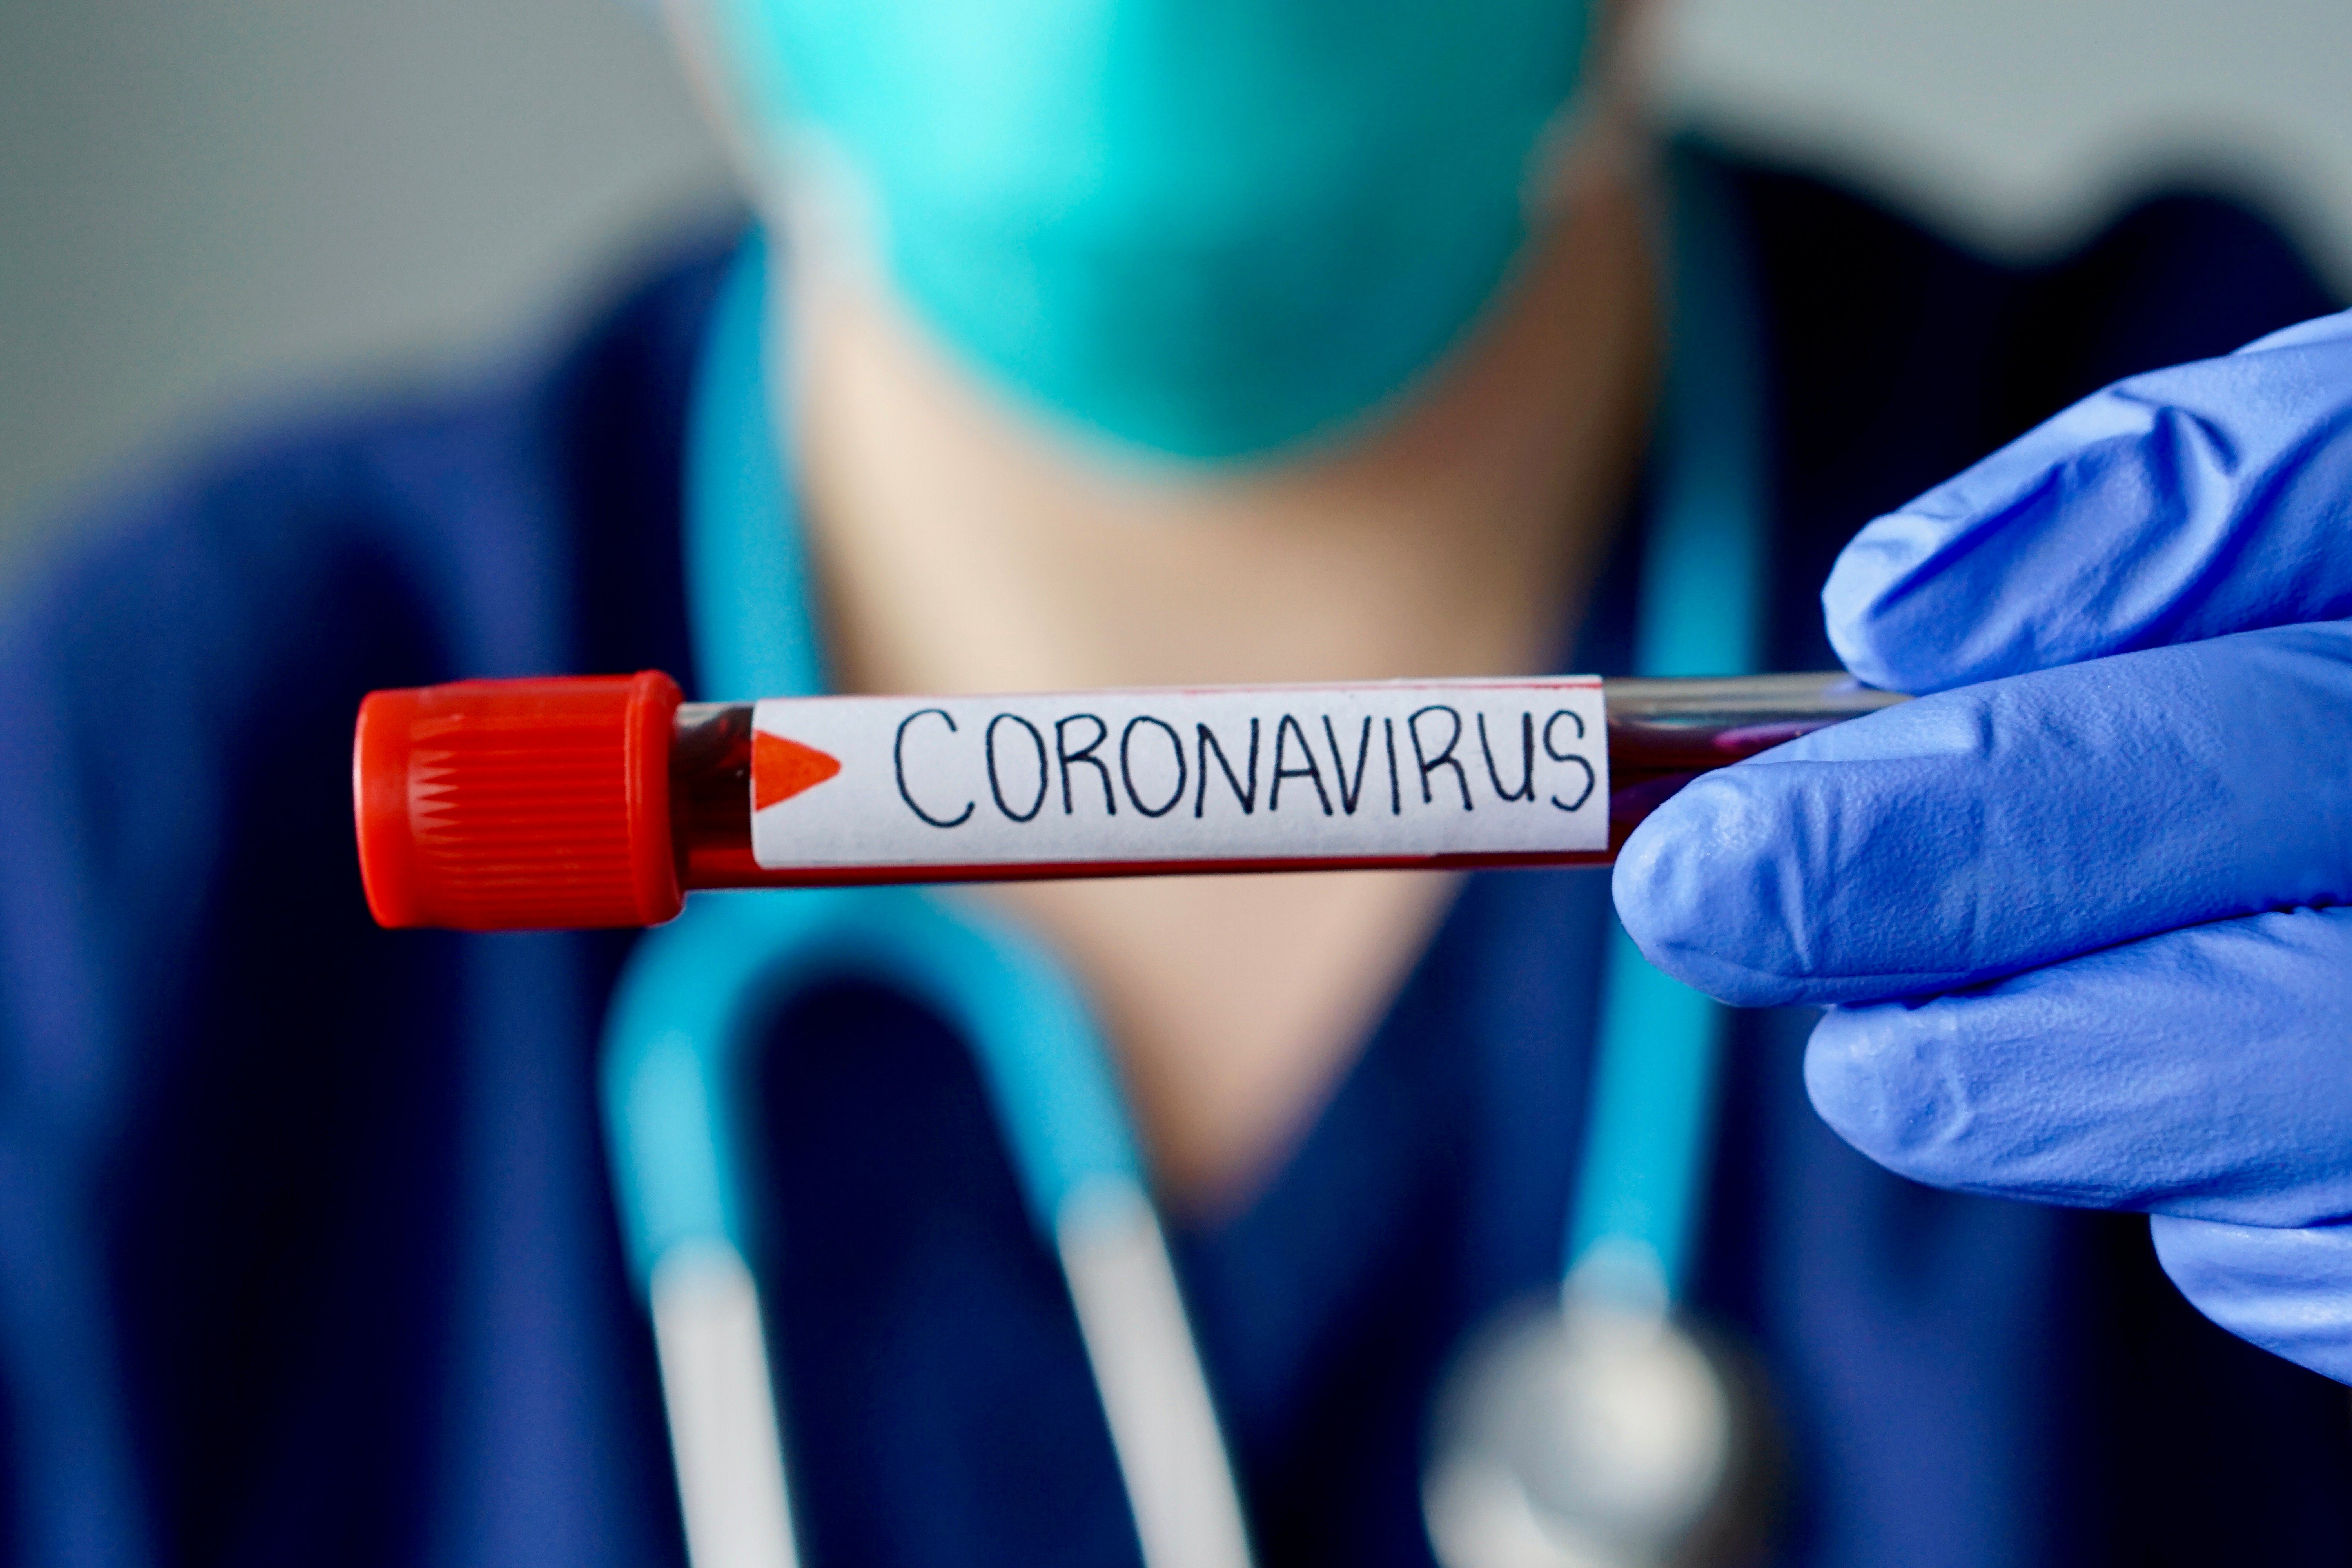 Coronavirus Updates and Resources for Child Care Providers and CCR&Rs